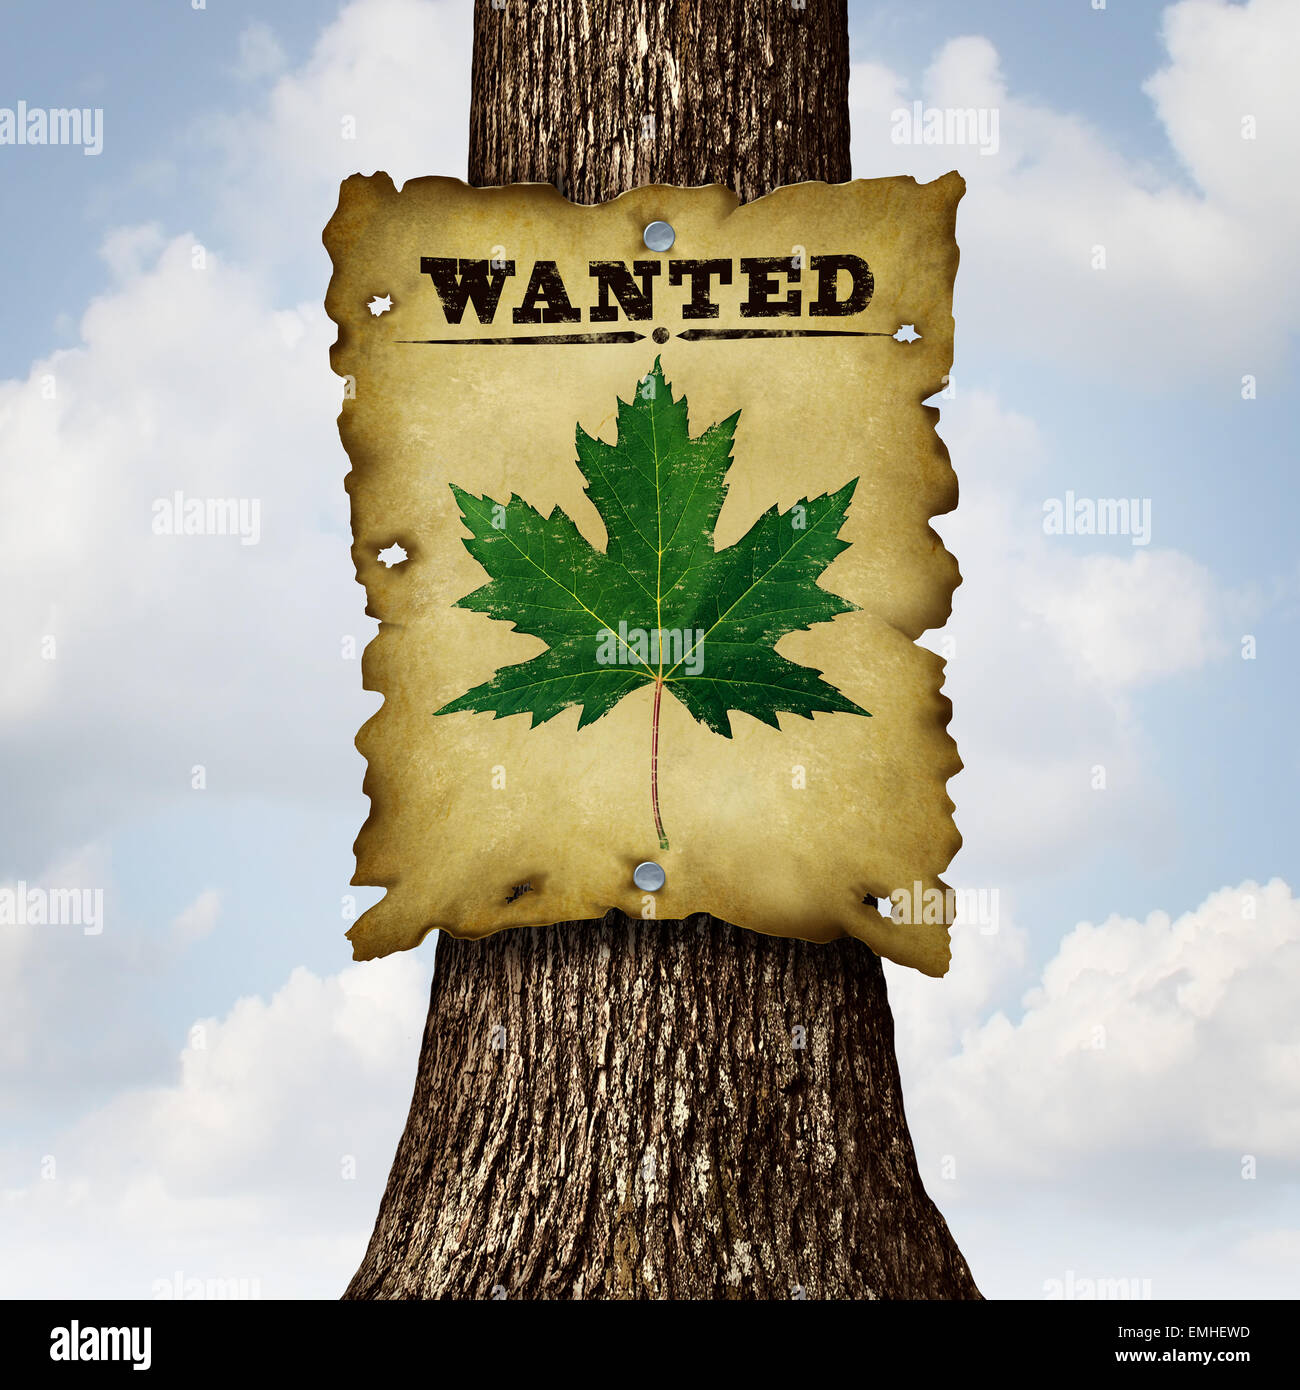 Environmentally Friendly green concept as a tree trunk and a wanted sign with a leaf as an ecology and conservation - Stock Image